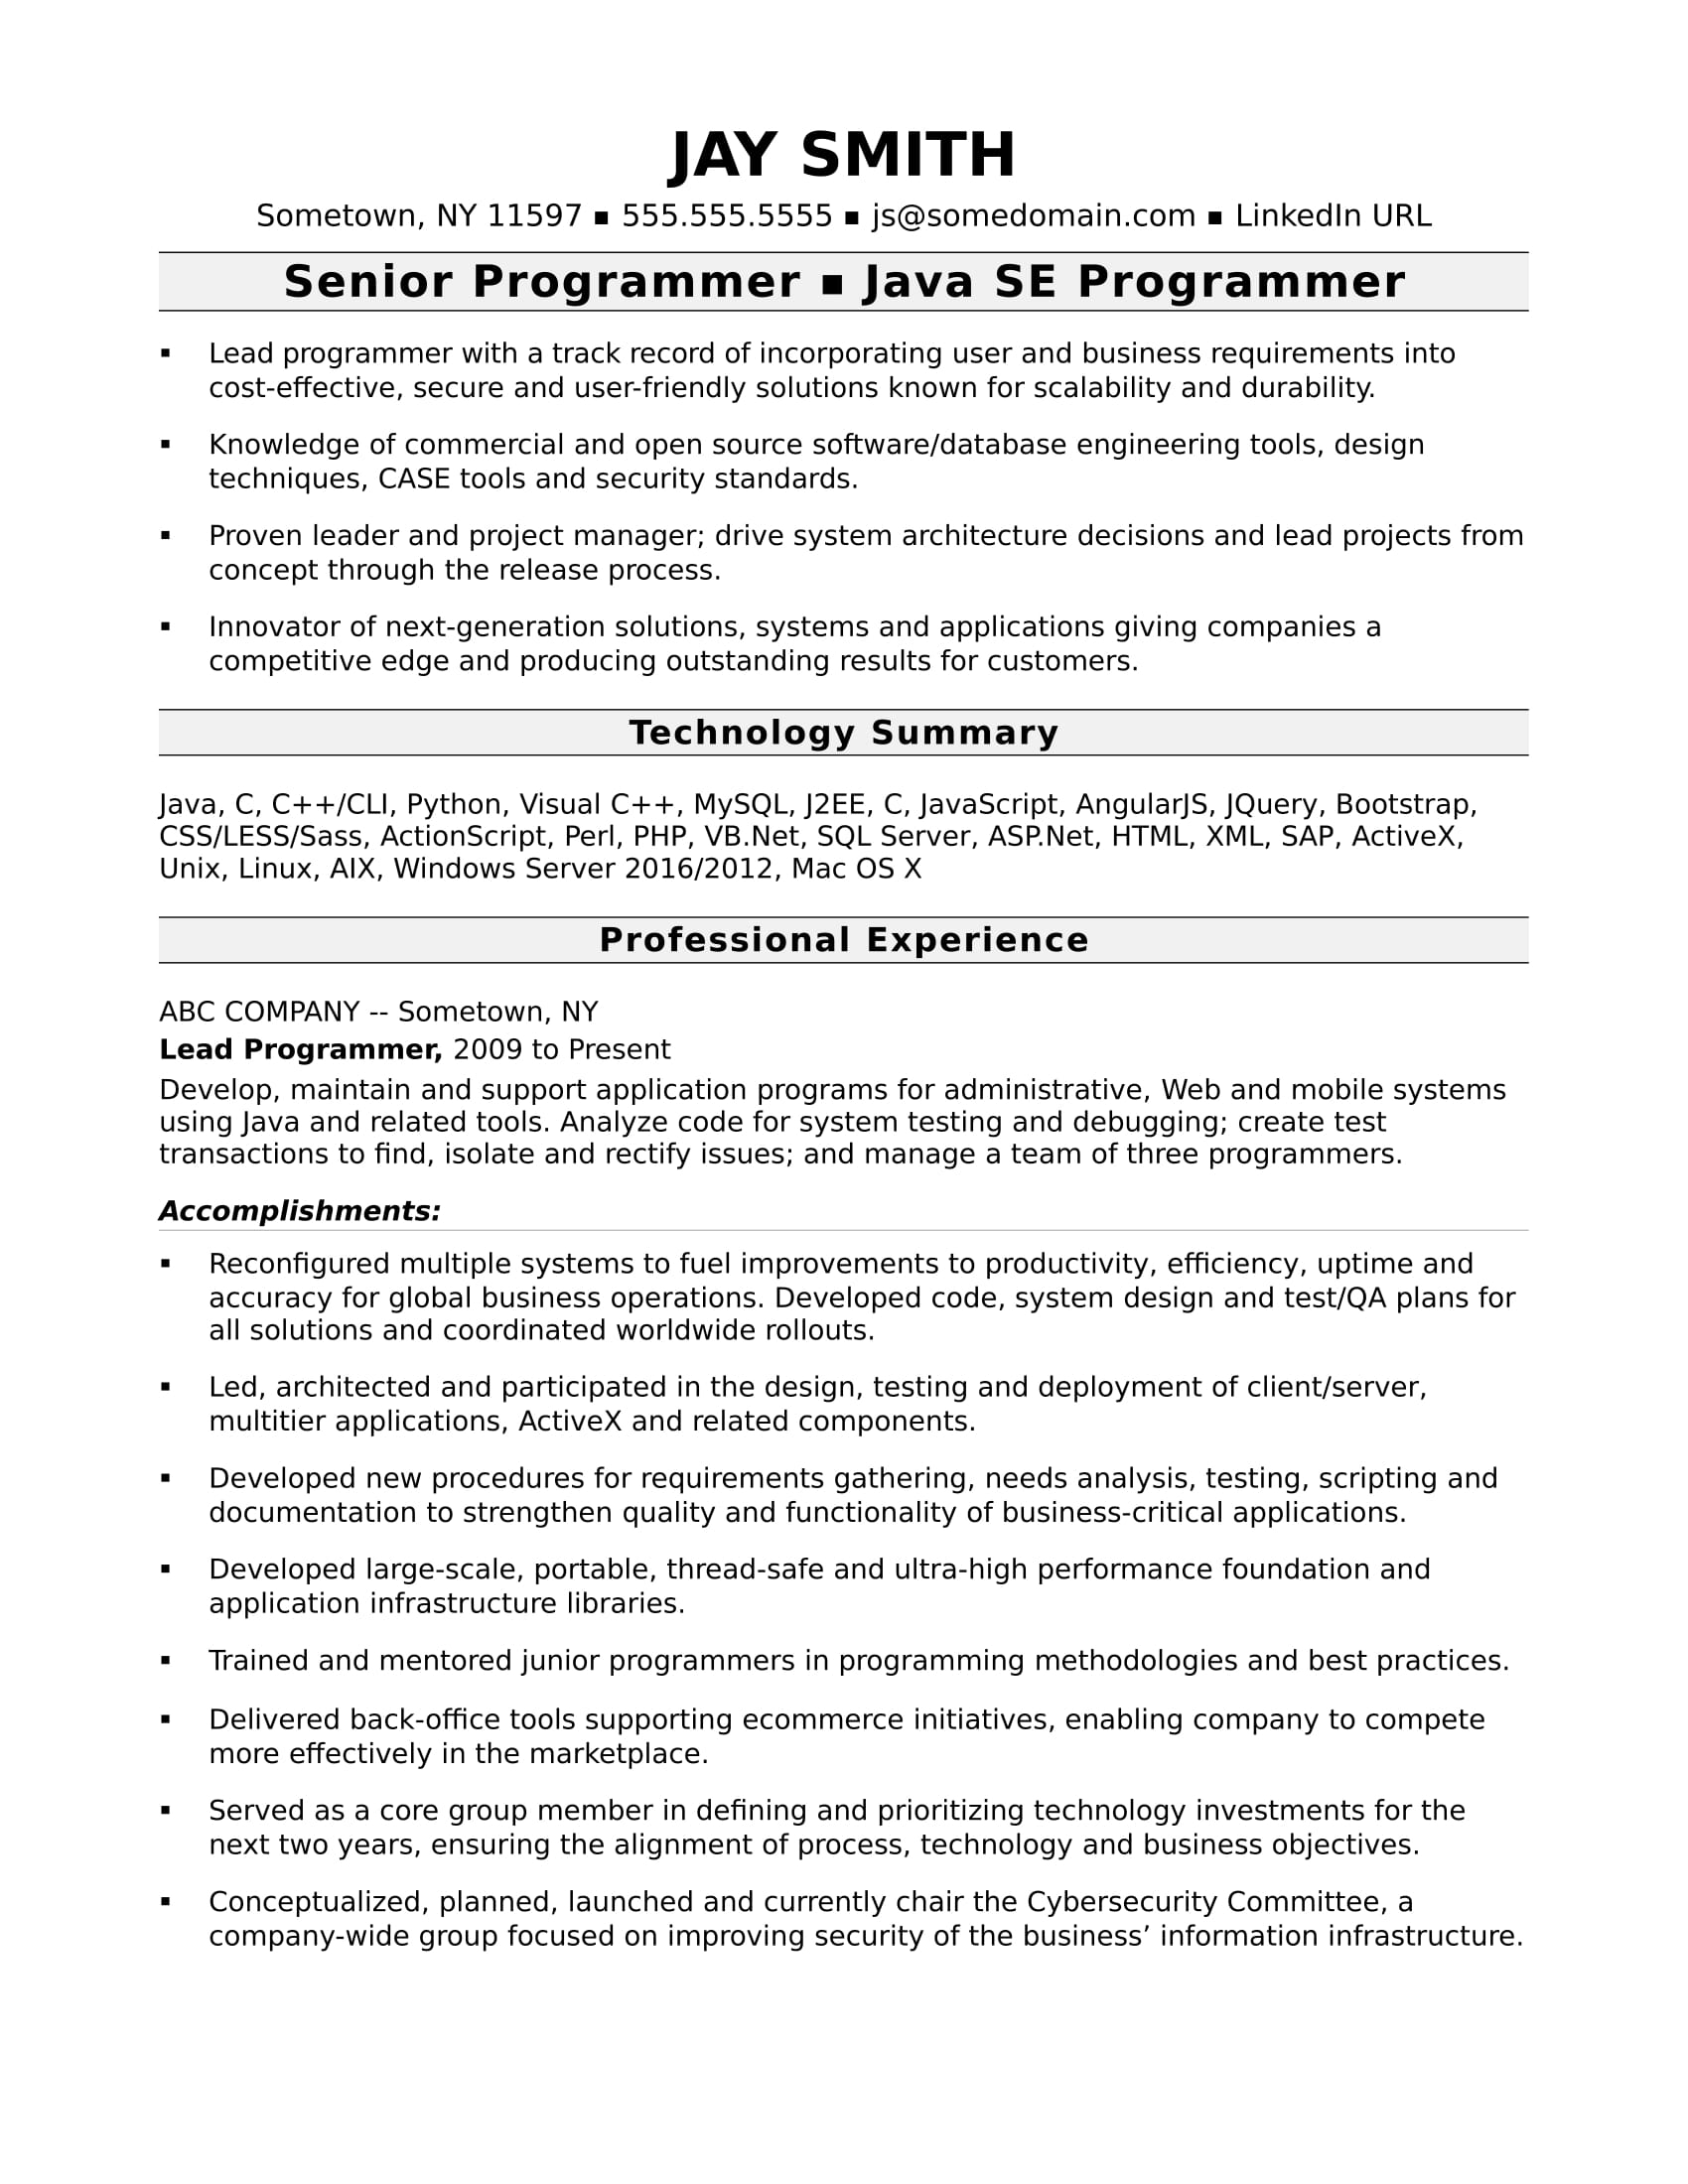 Captivating Sample Resume For An Experienced Computer Programmer Pertaining To Programming Skills Resume